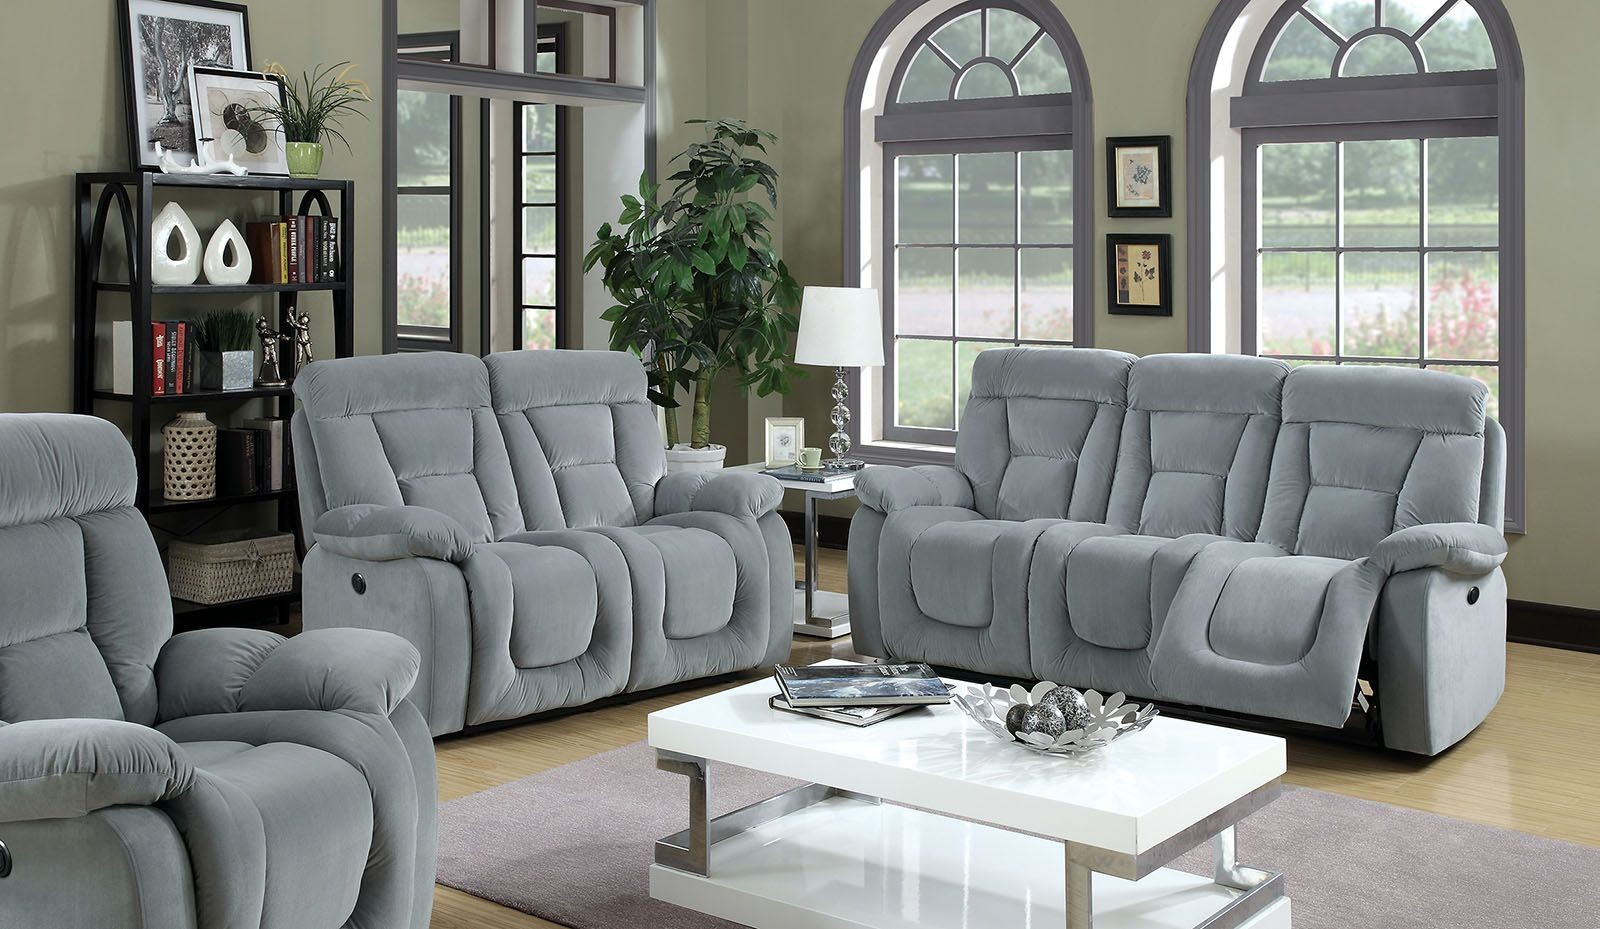 Bloomington Gray Reclining Living Room Set Cm6129gy Sf Furniture Of America